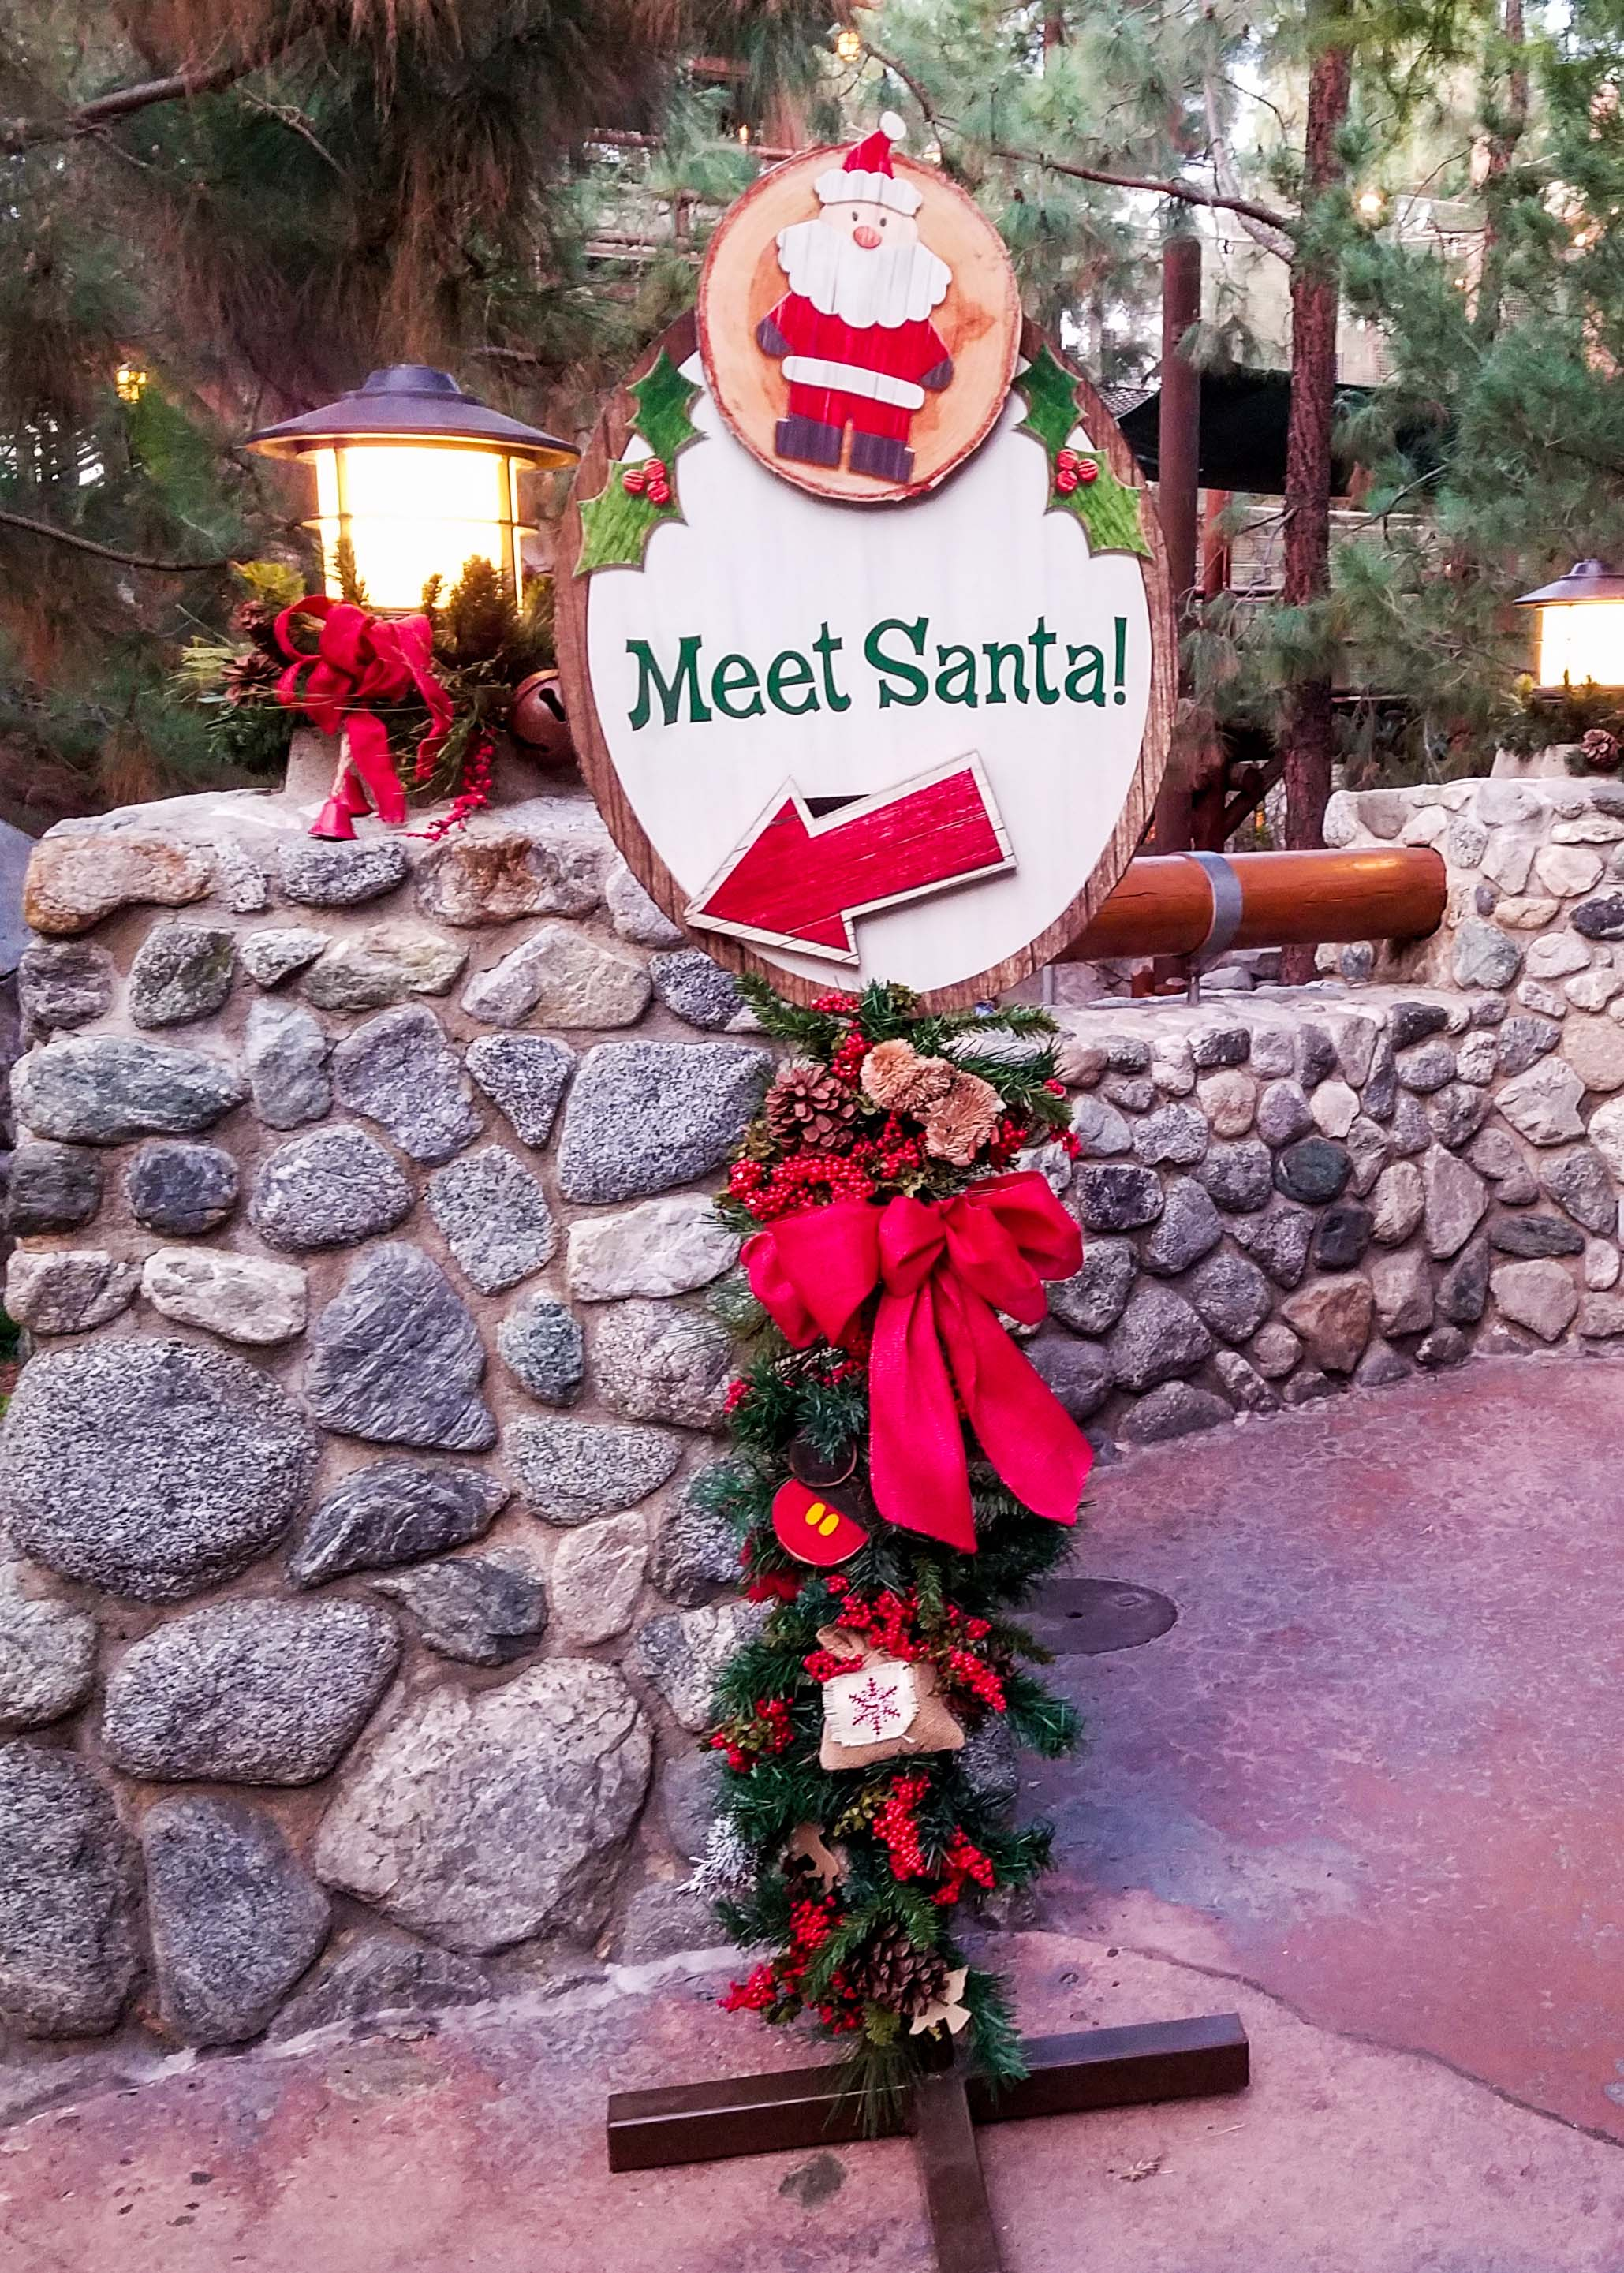 Meet Santa at Christmas at Disneyland